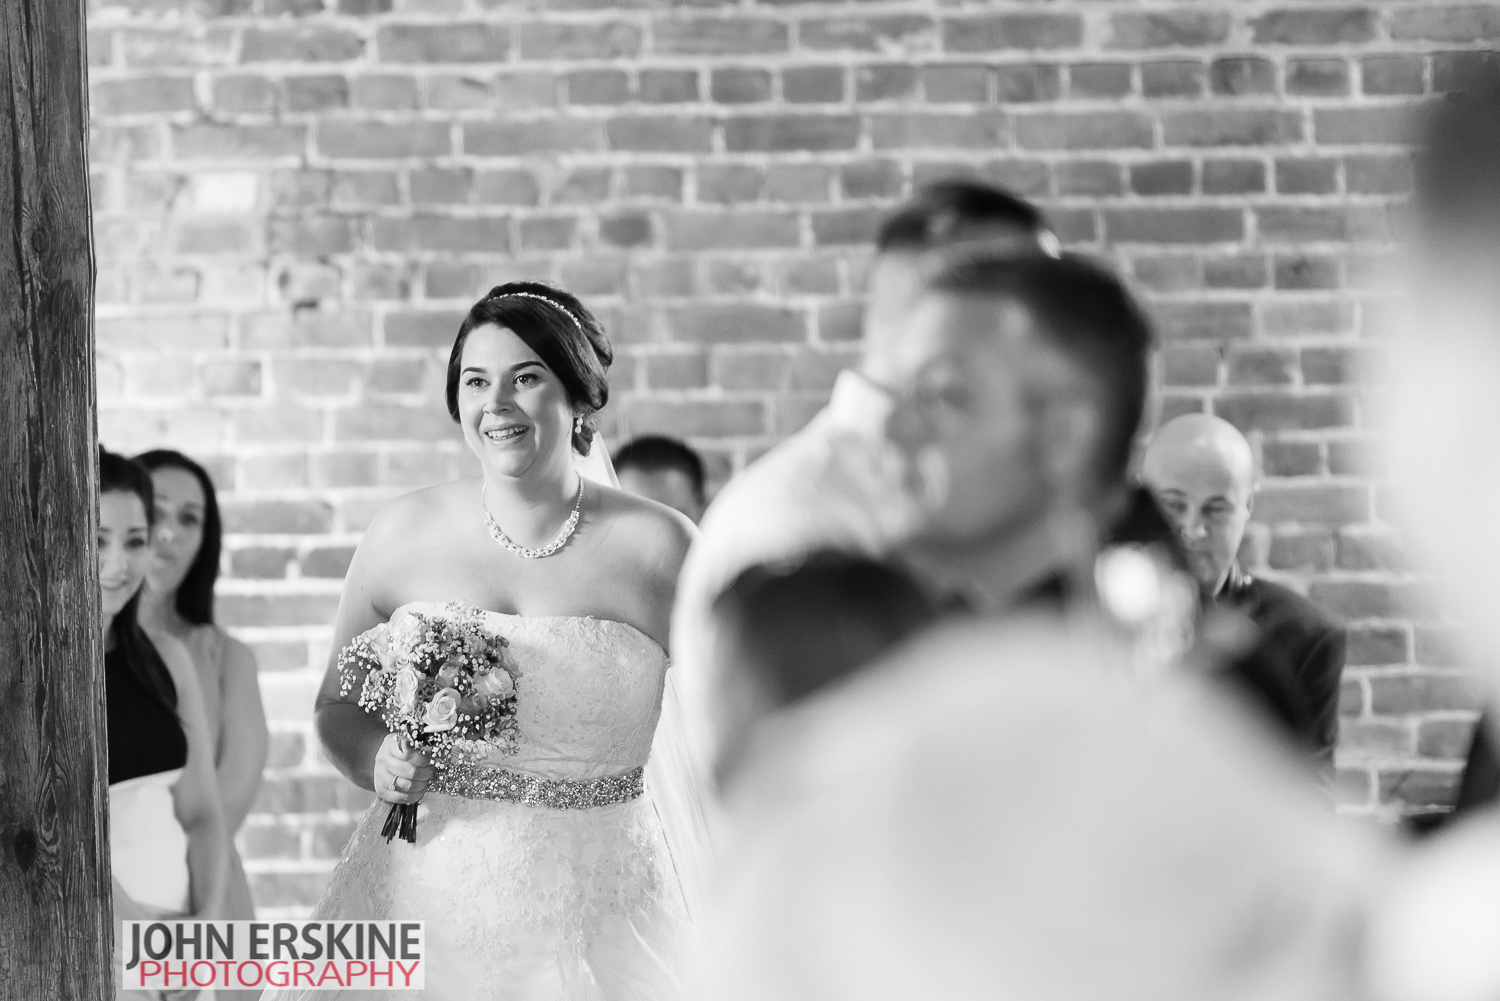 A brides happy tears in the aisle